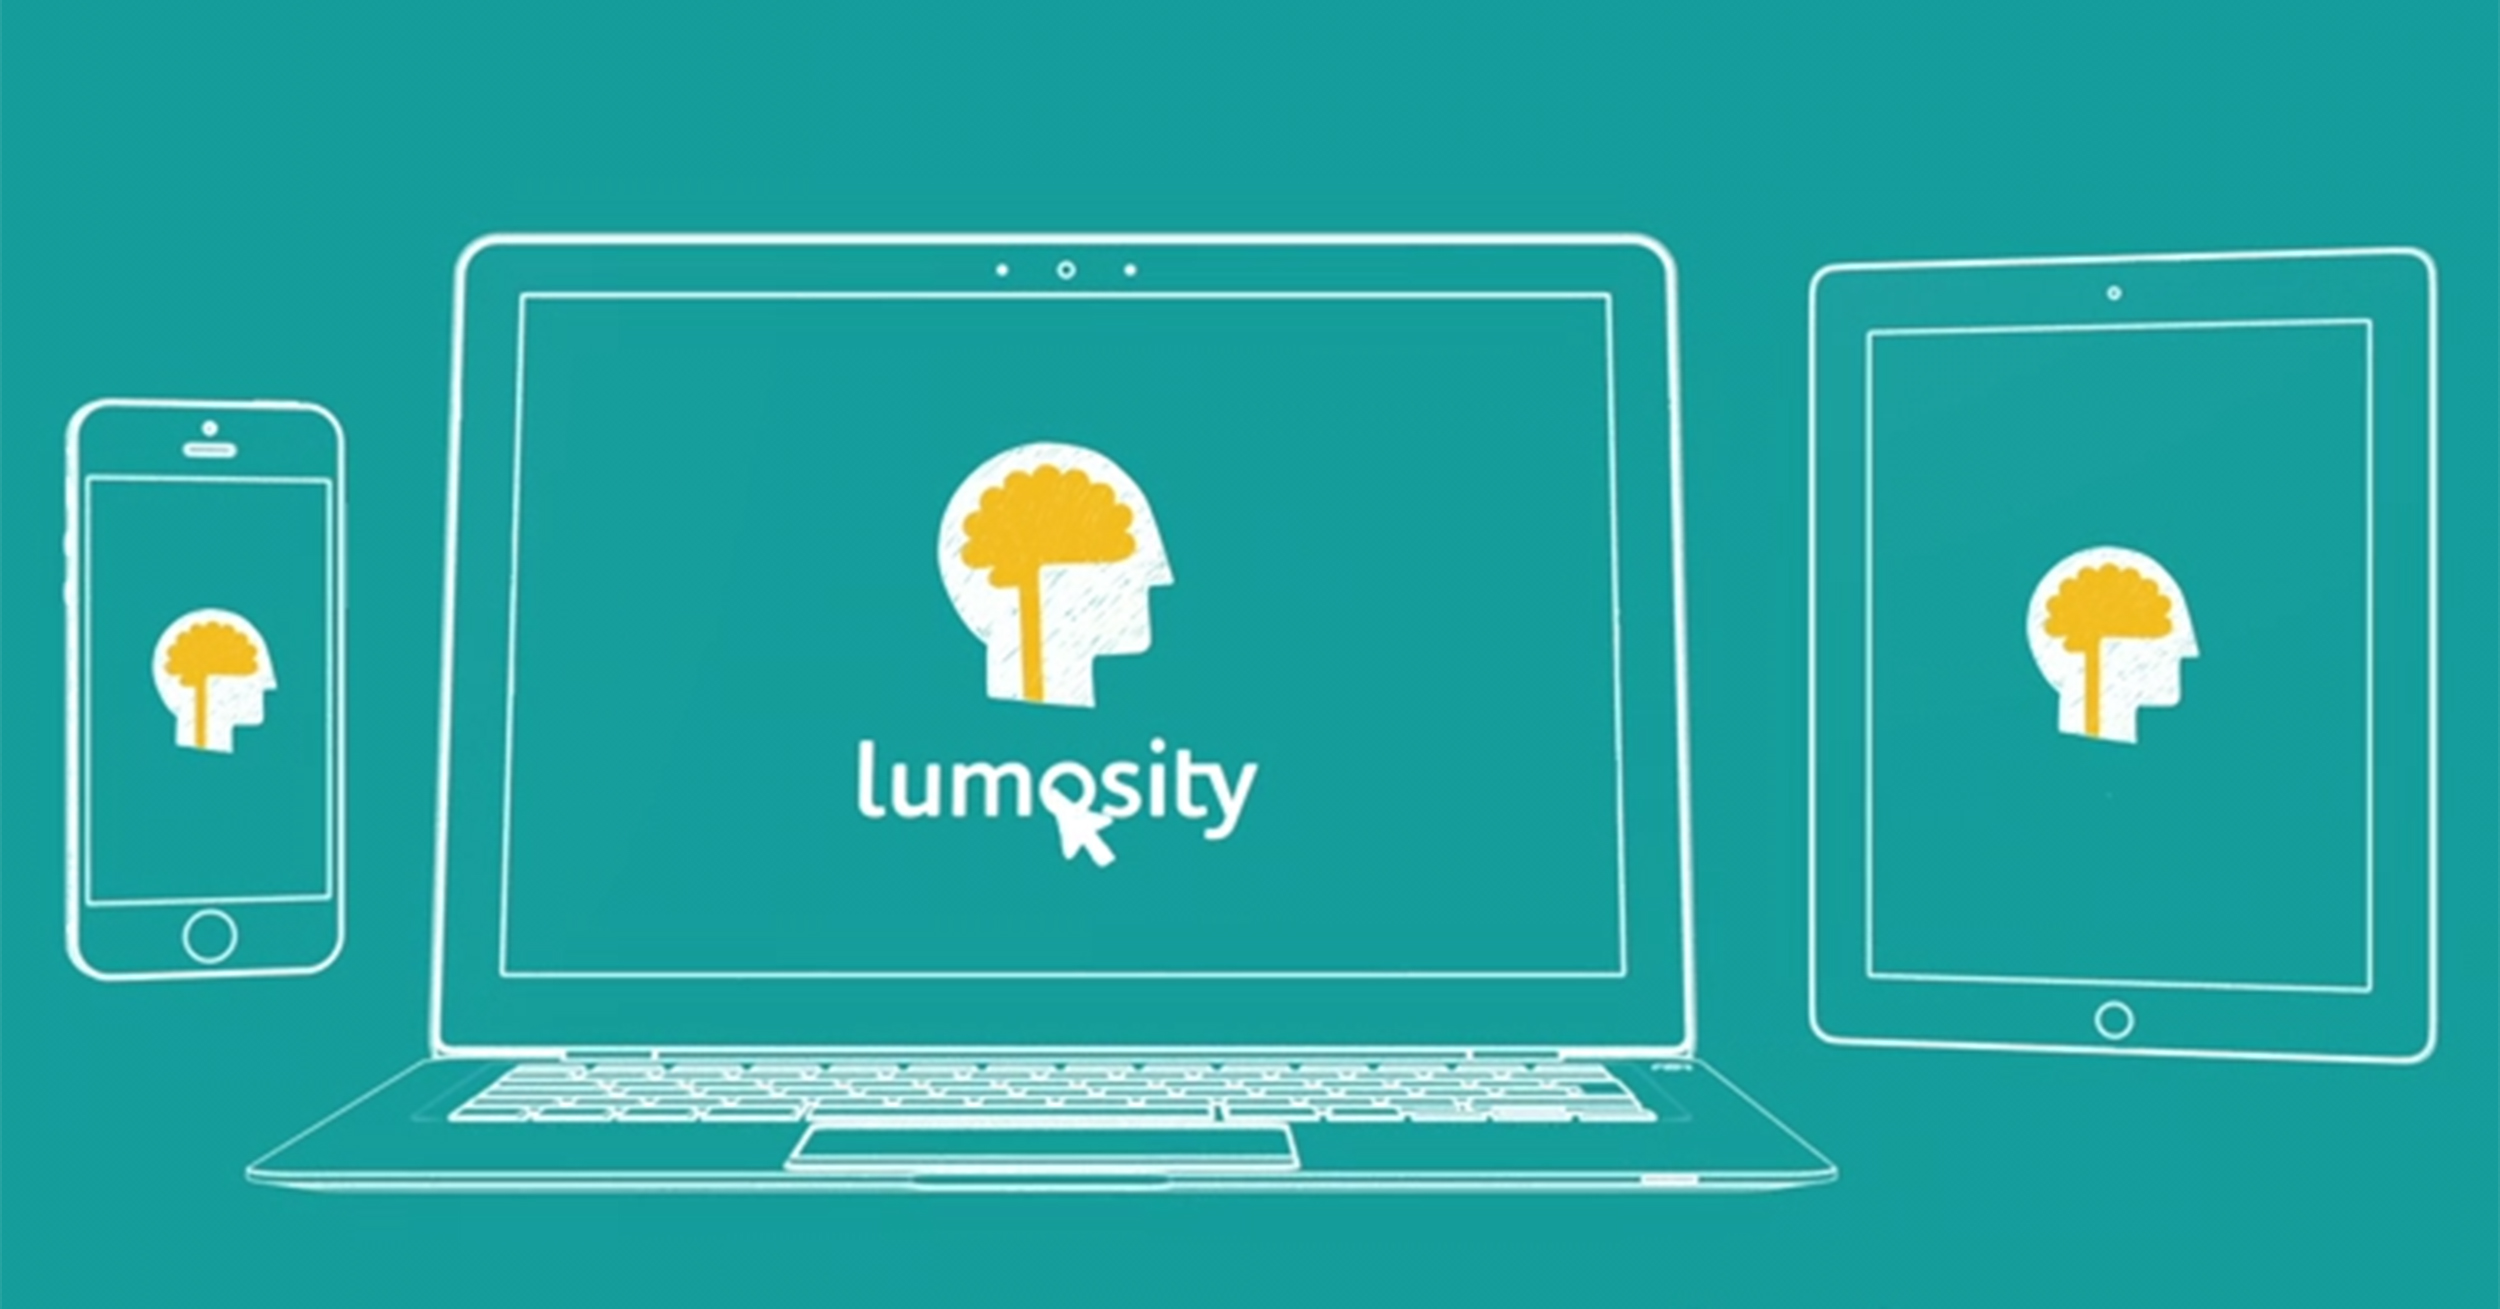 lumosity login crack